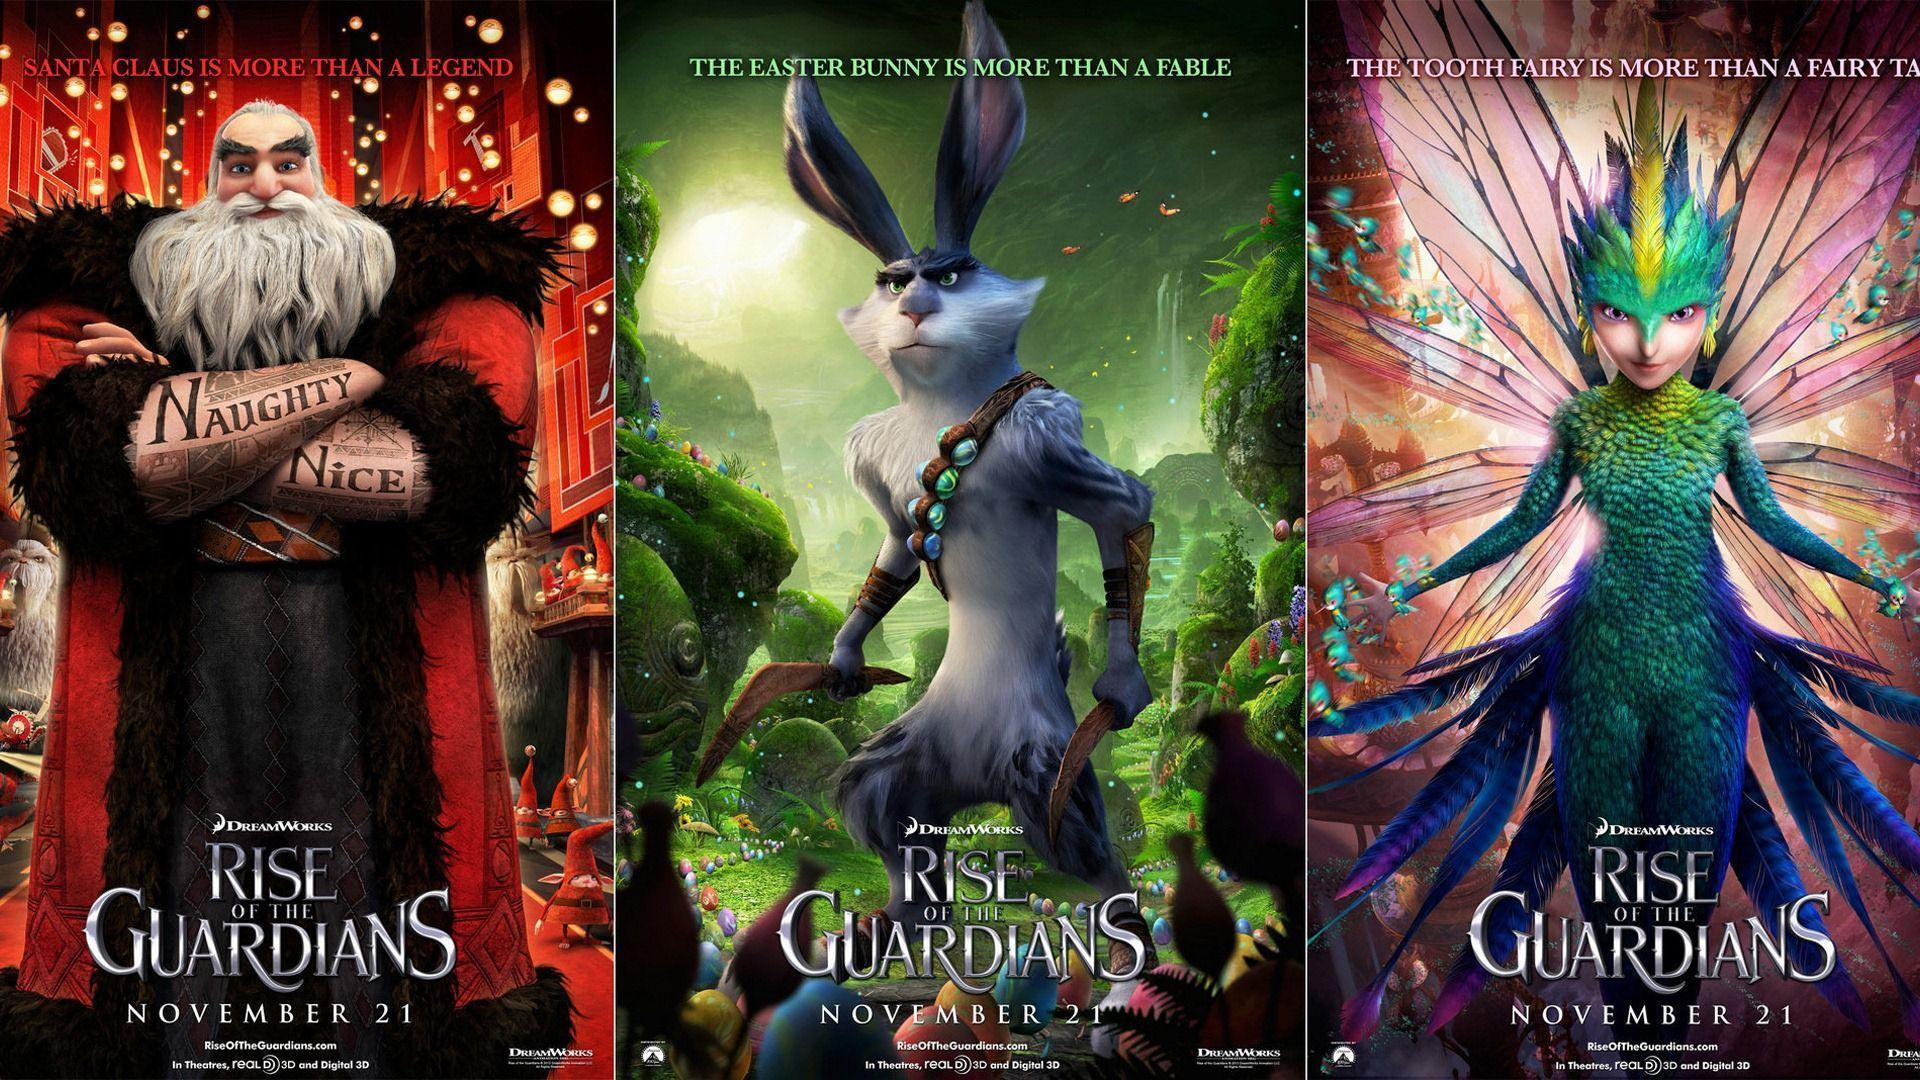 Rise of the guardians wallpapers wallpaper cave rise of the guardians hd wallpapers 3 1920x1080 wallpaper thecheapjerseys Gallery